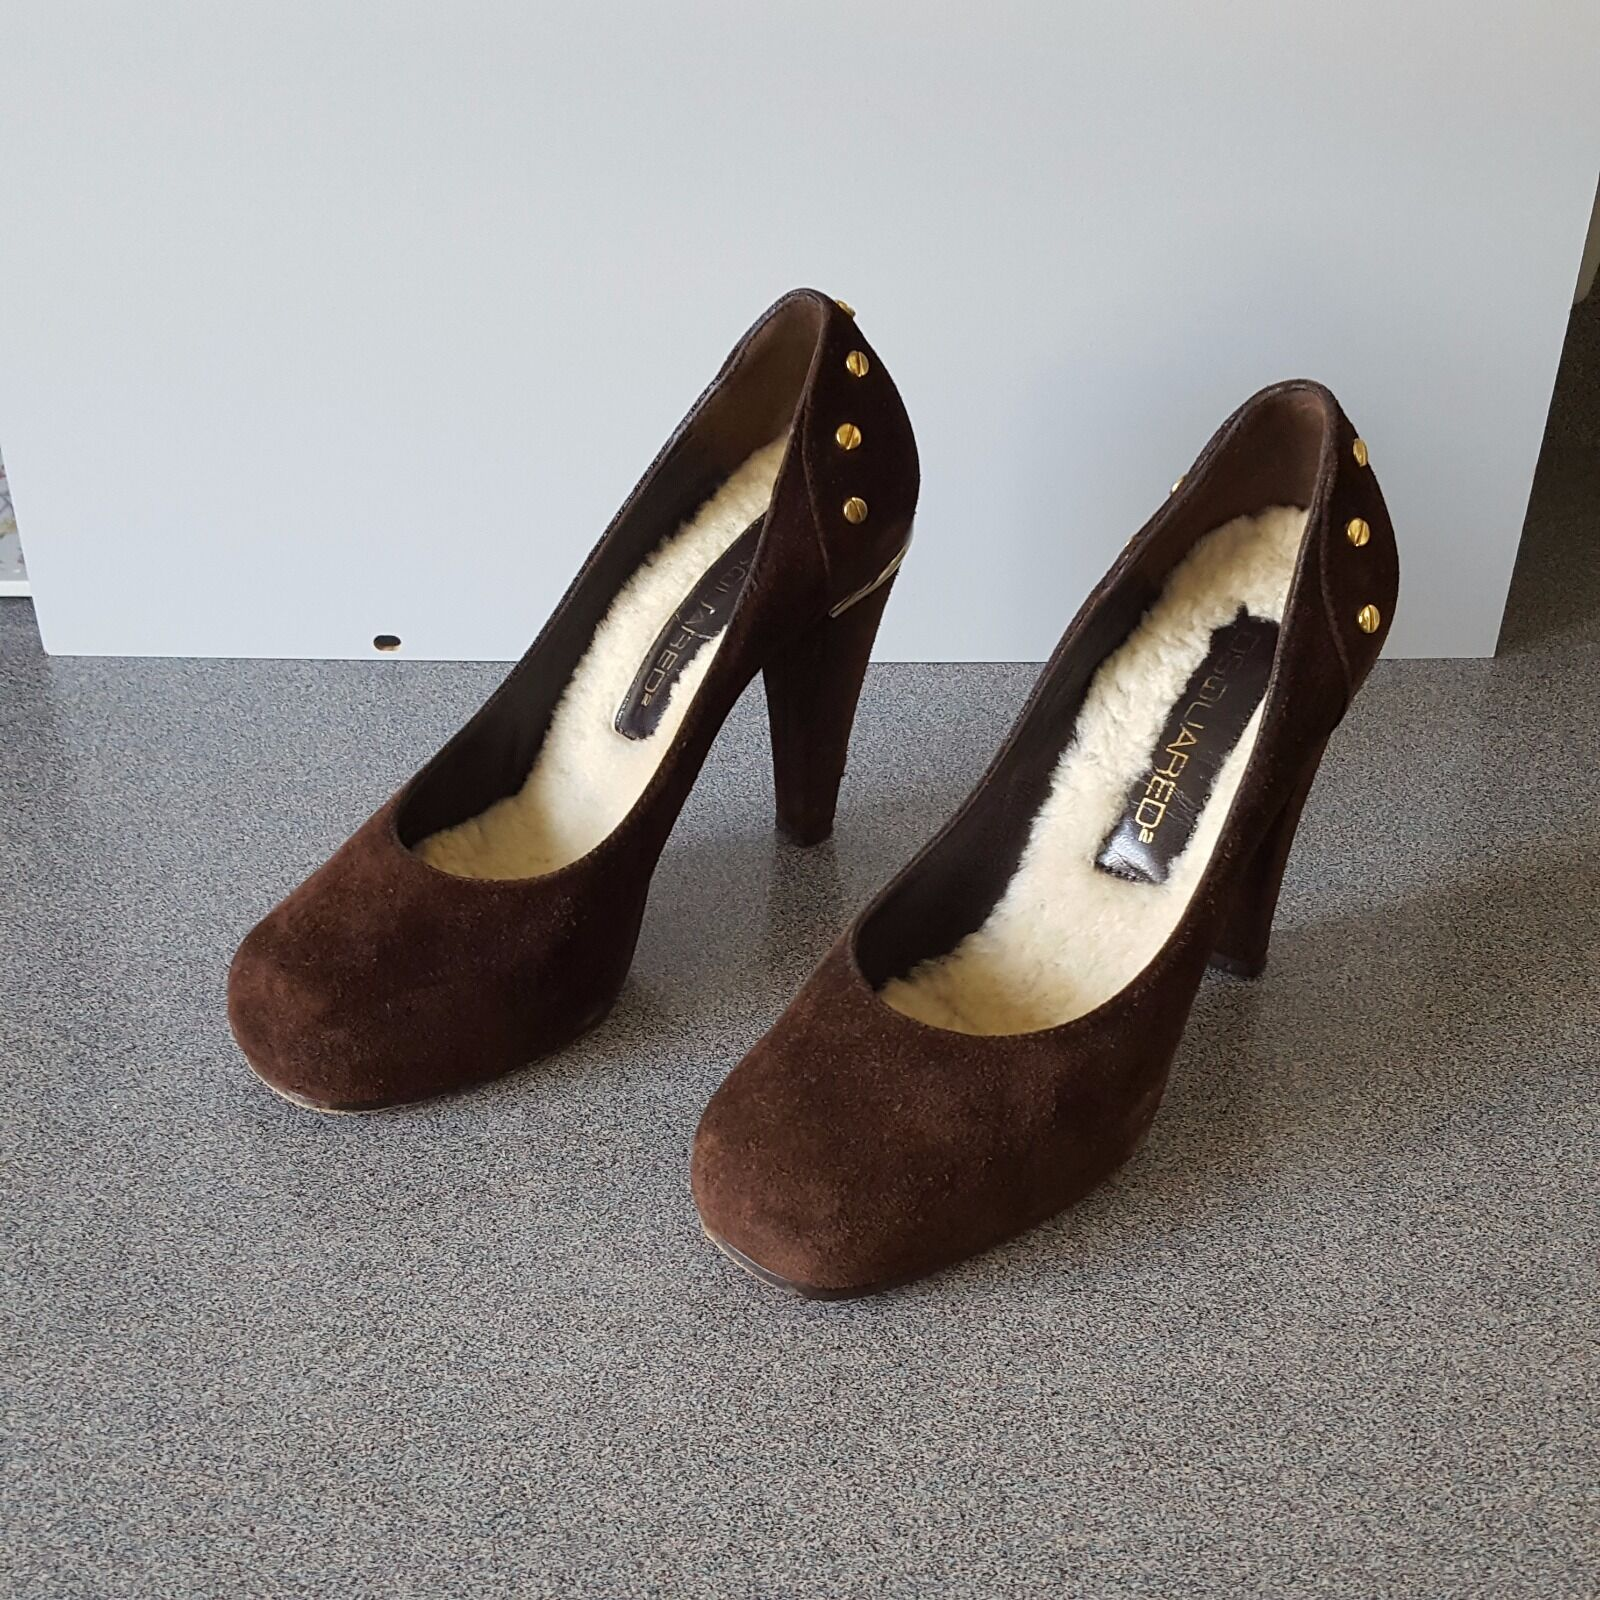 DSQUARED2 WOMEN BROWN SUEDE 4'' HEELS SIZE 36 MADE IN ITALY